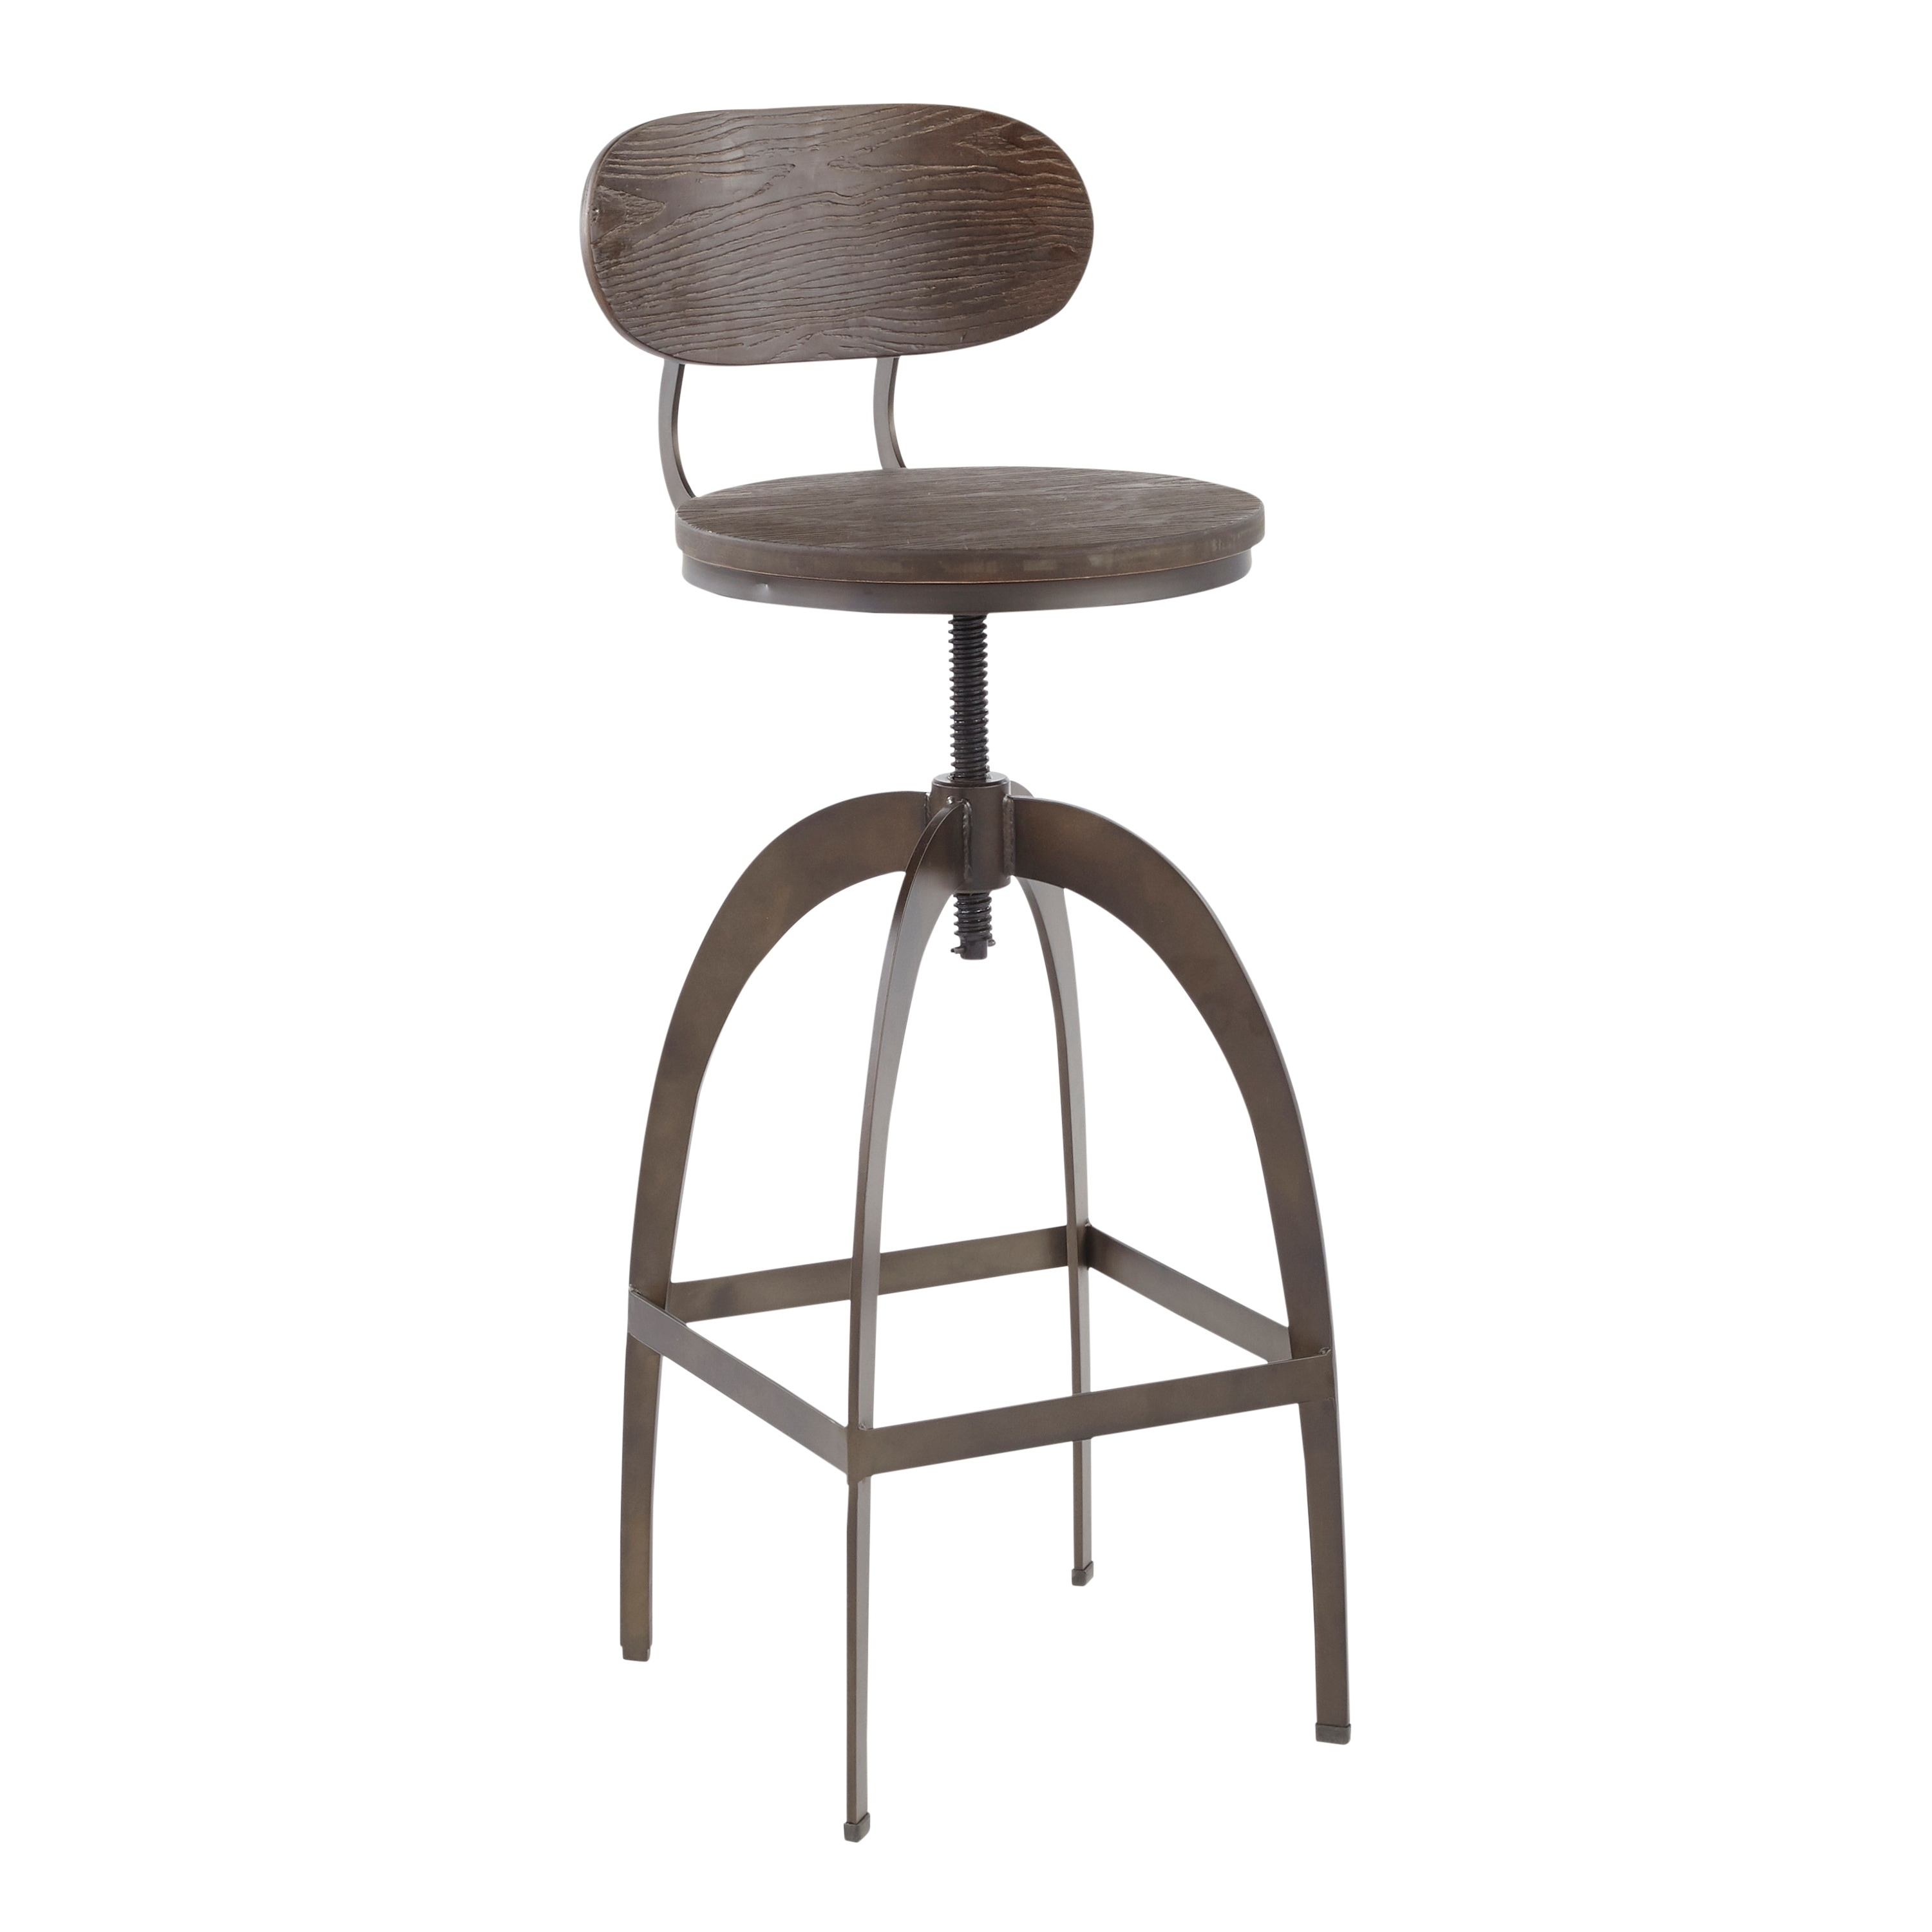 Swell Carbon Loft Goddard Industrial Metal And Wood Mid Back Bar Stool Squirreltailoven Fun Painted Chair Ideas Images Squirreltailovenorg